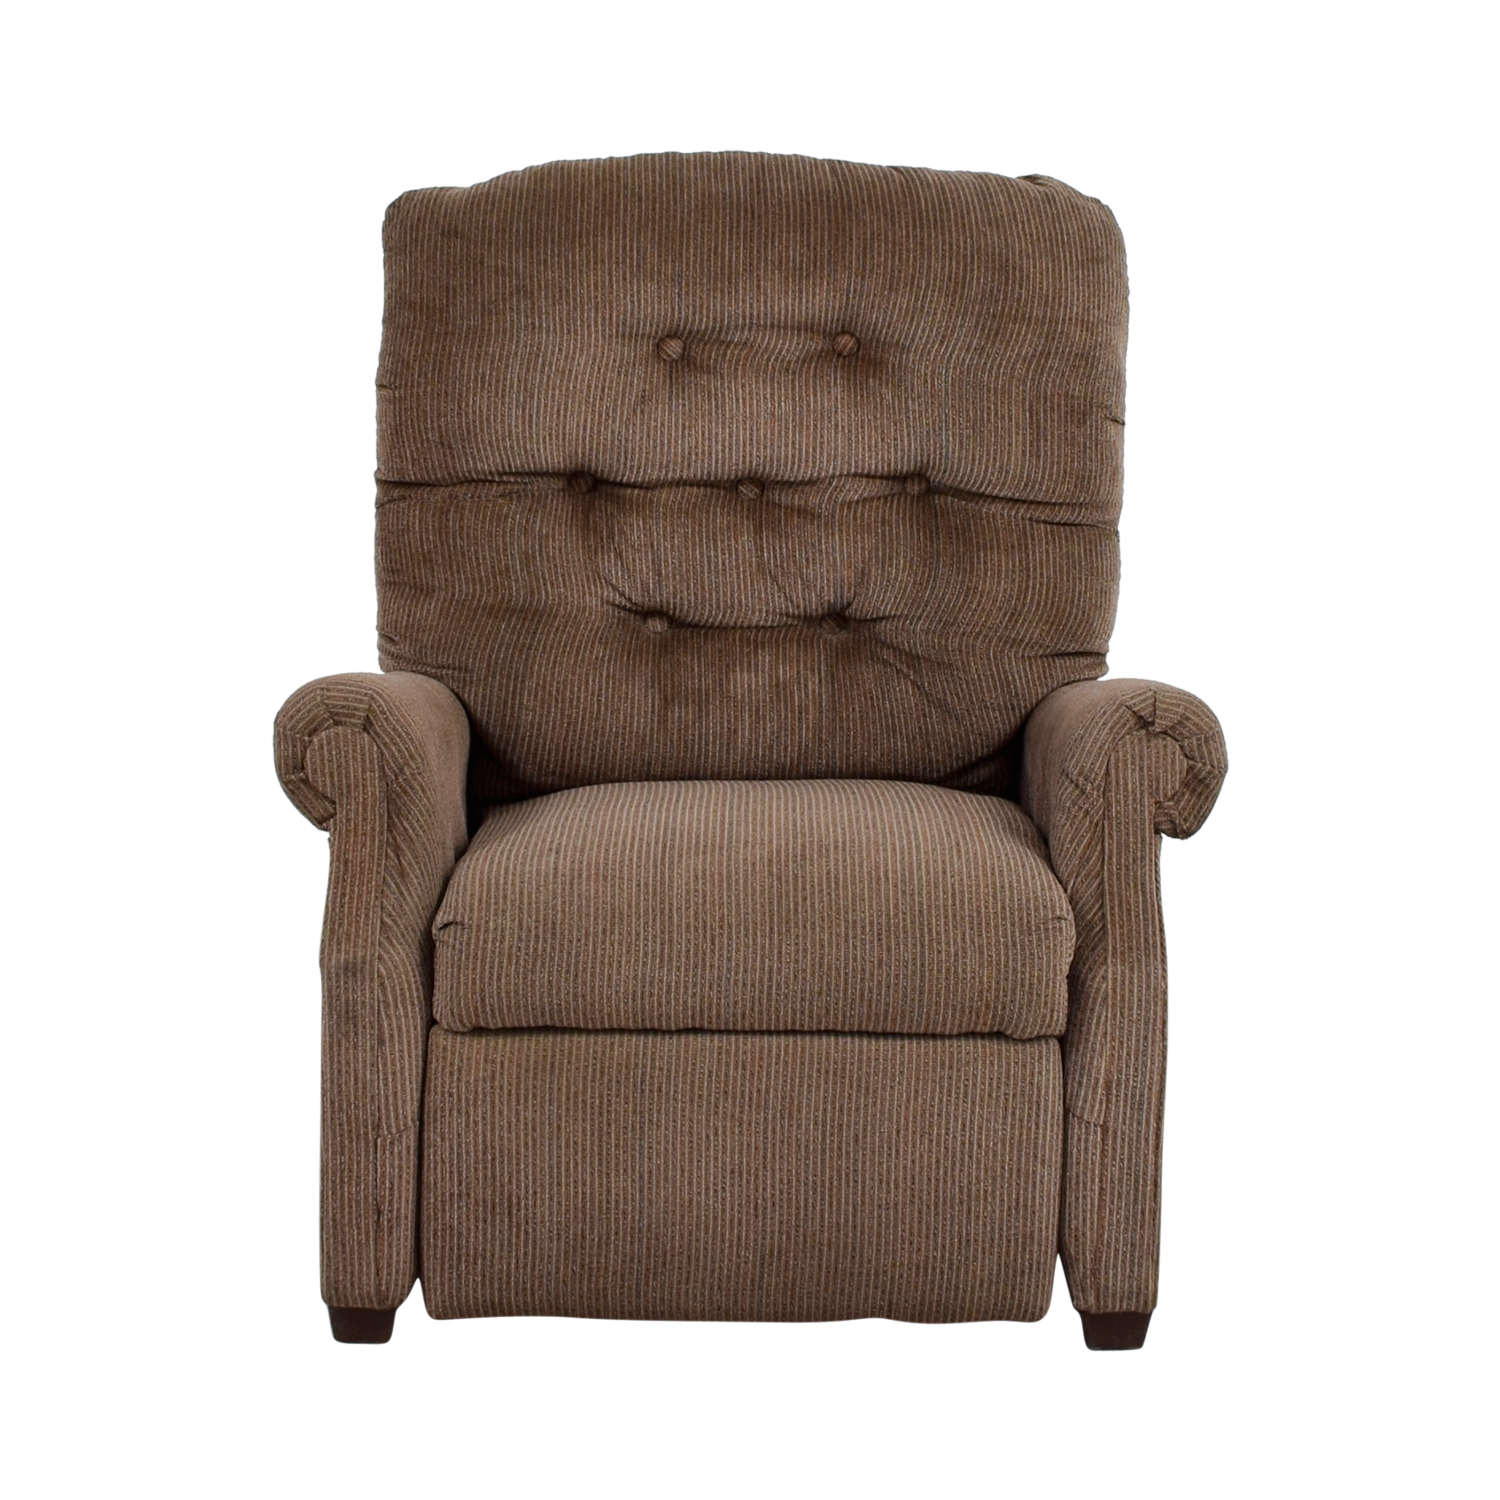 Tan and Grey Cloth Recliner Chairs